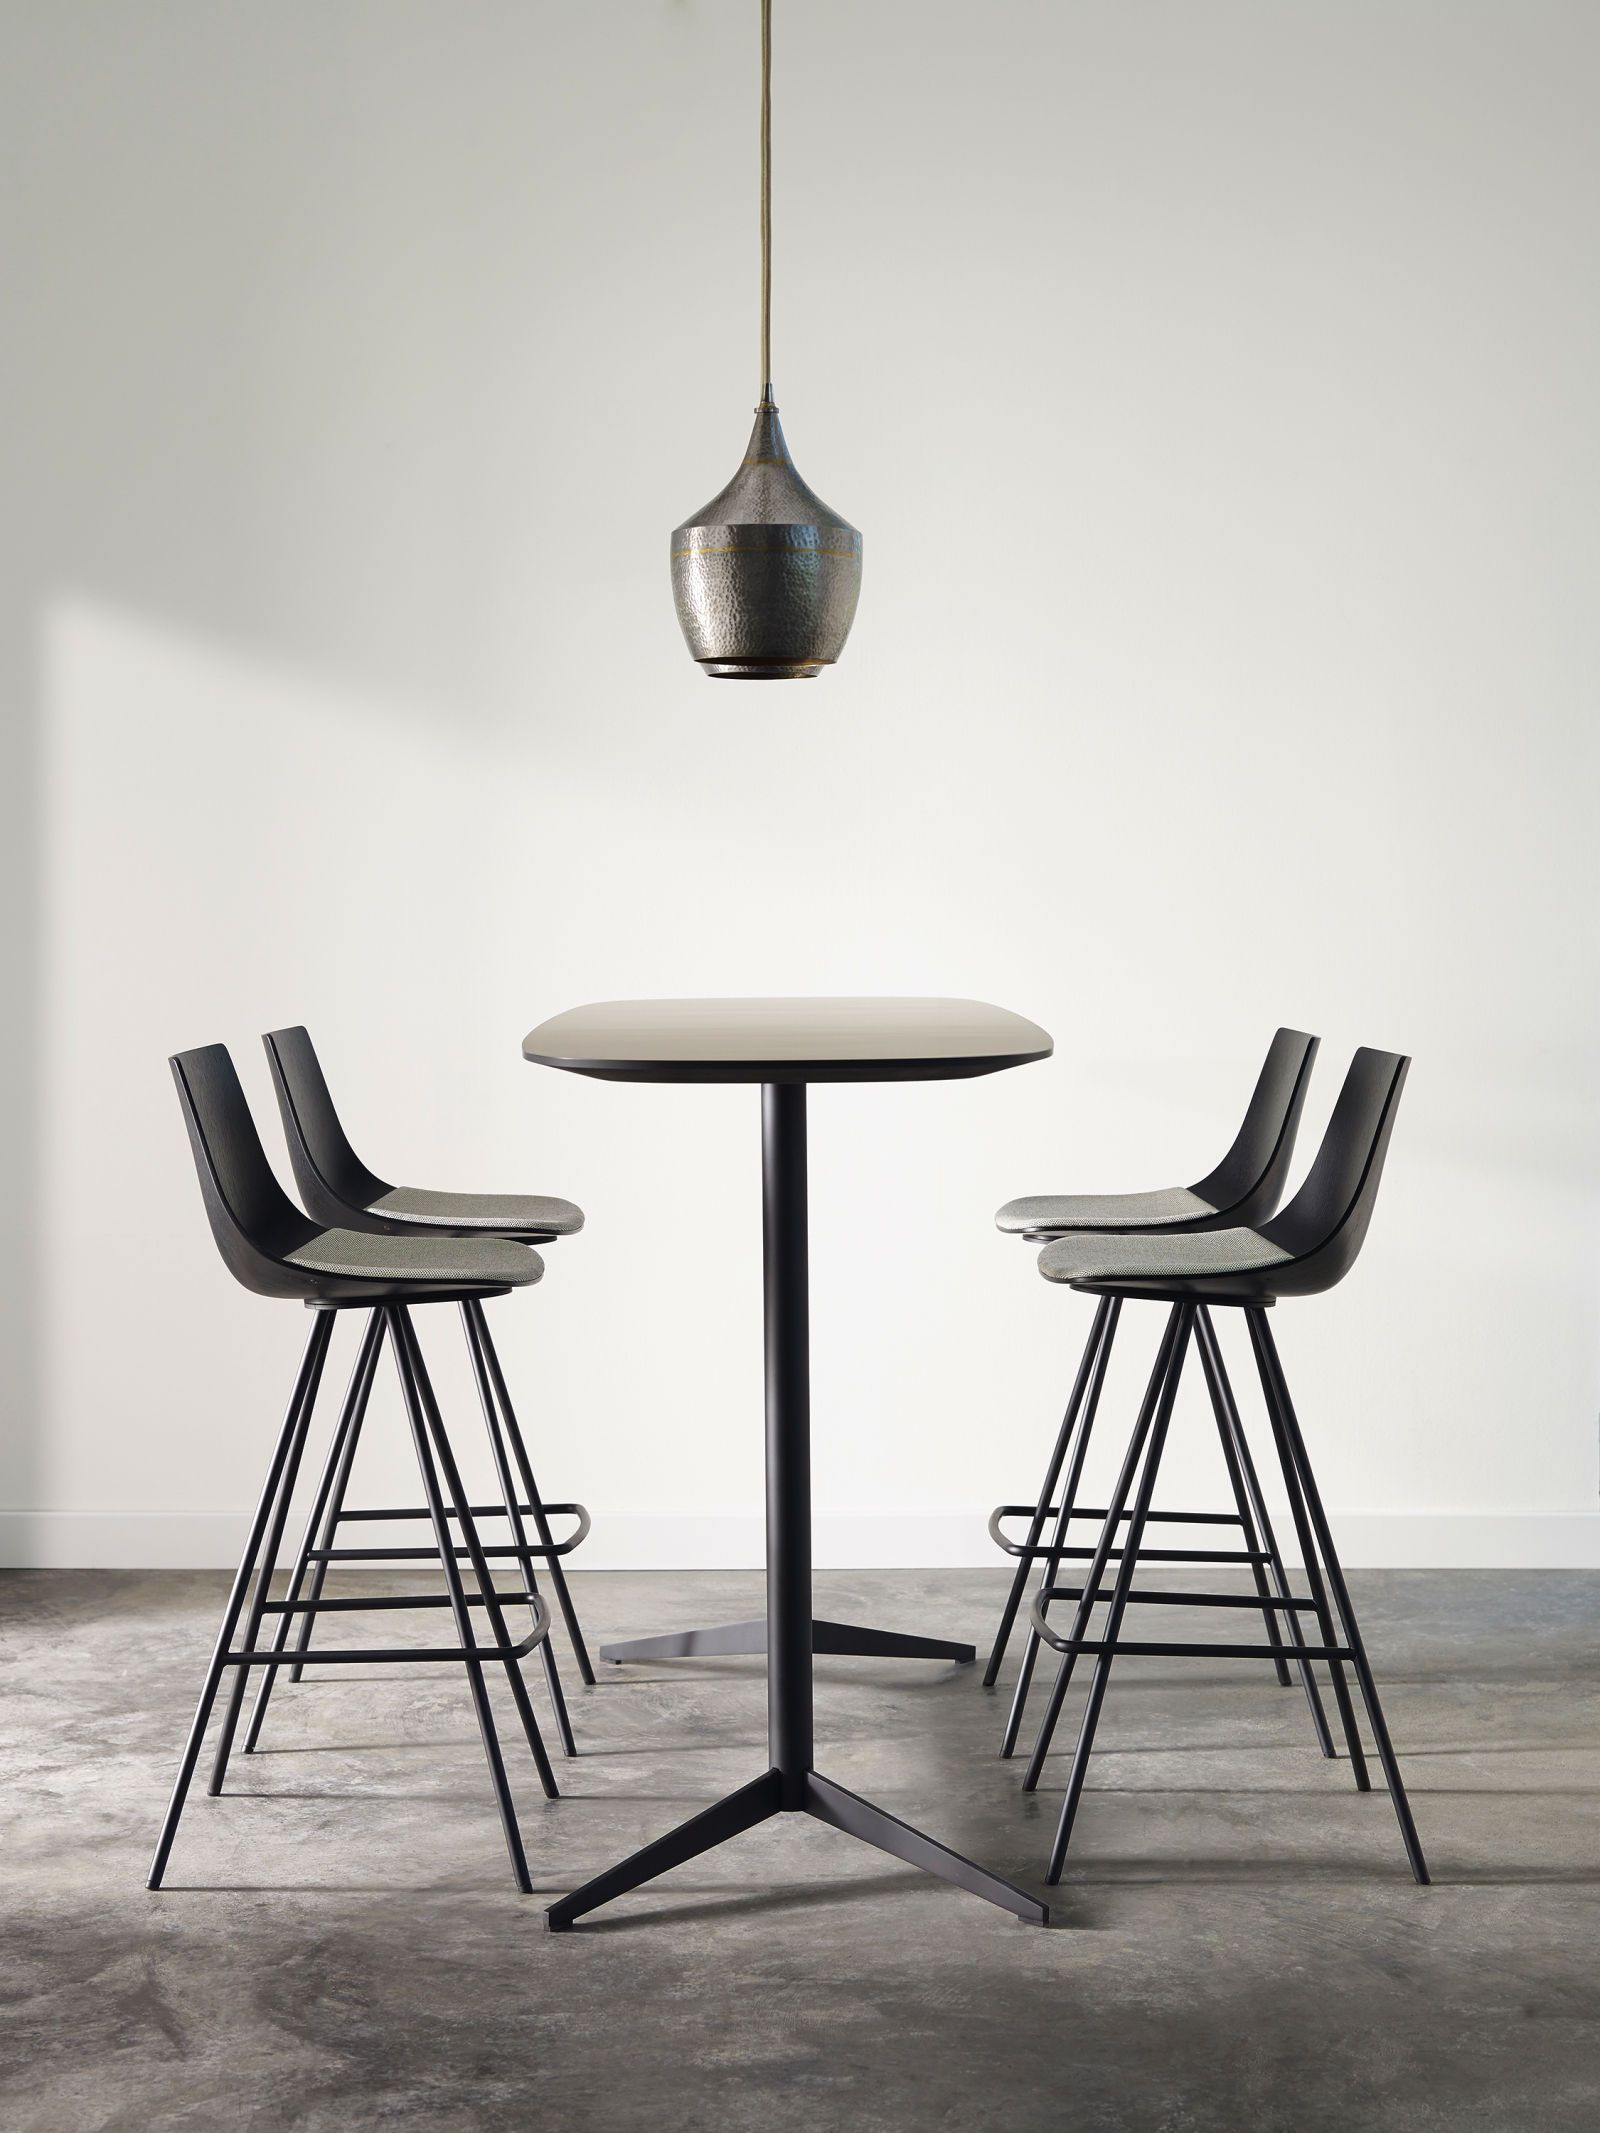 Davis Furniture Join Barstool Seating Barstools Silver Award